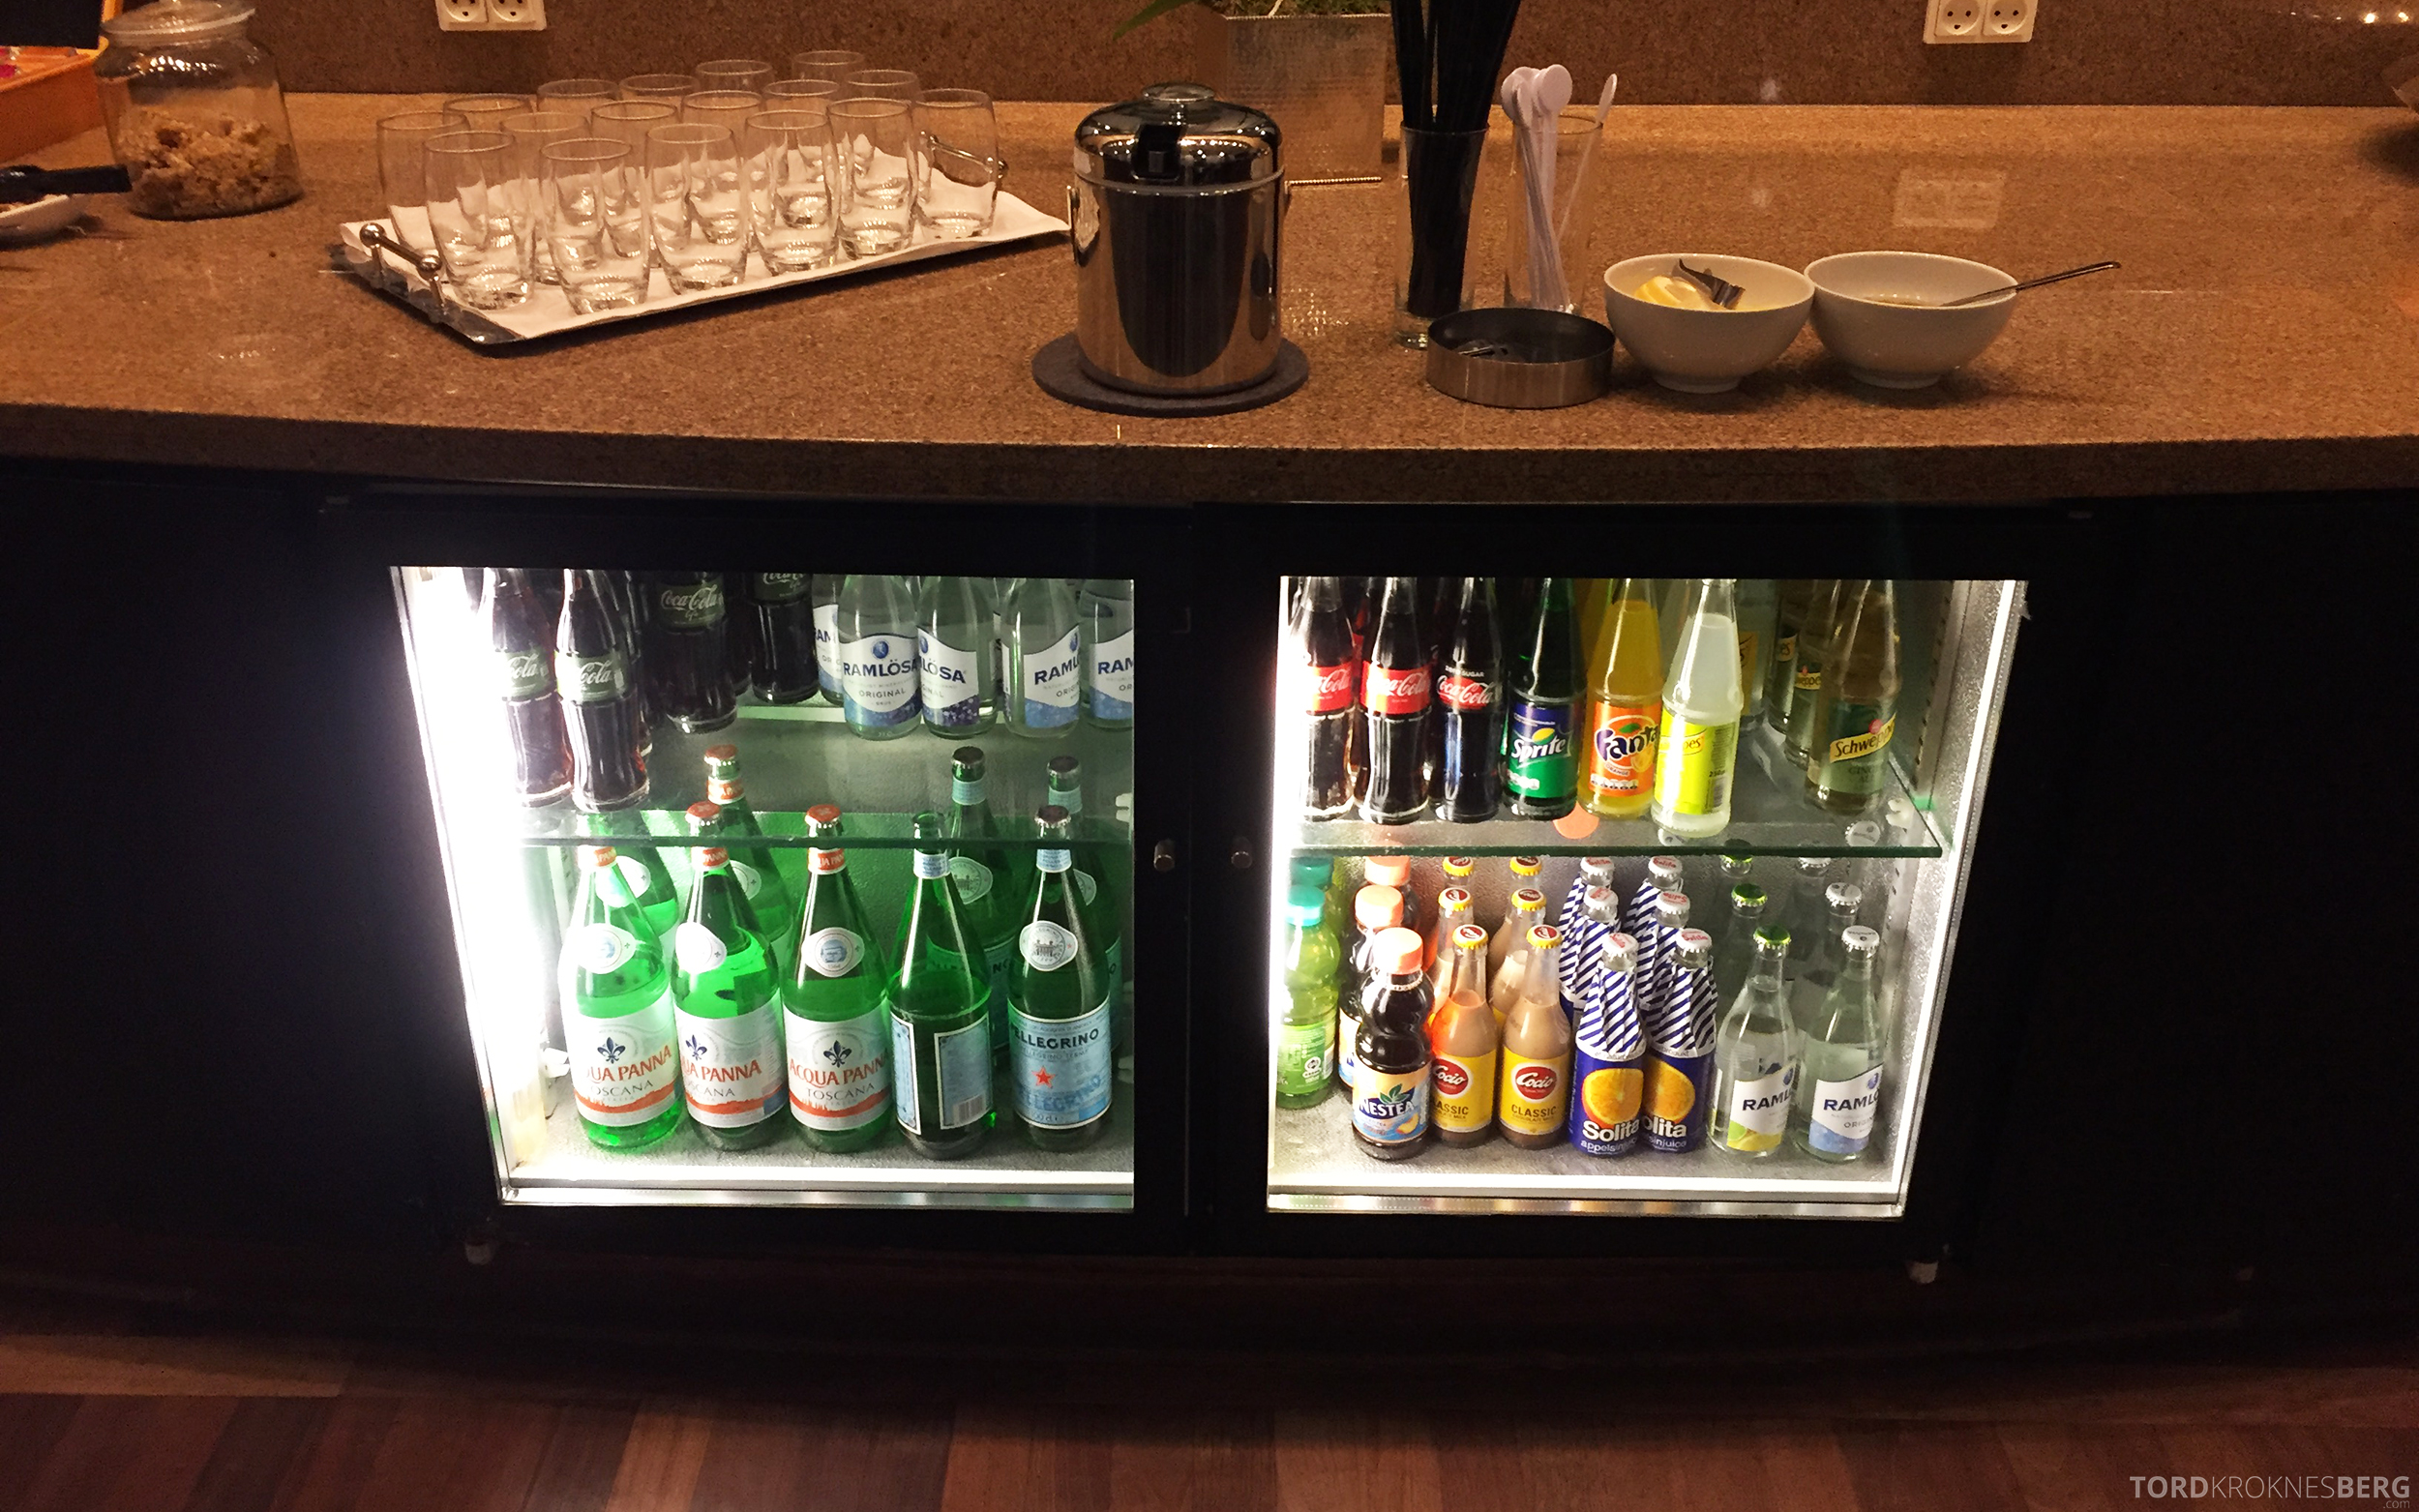 Hilton Copenhagen Executive Lounge